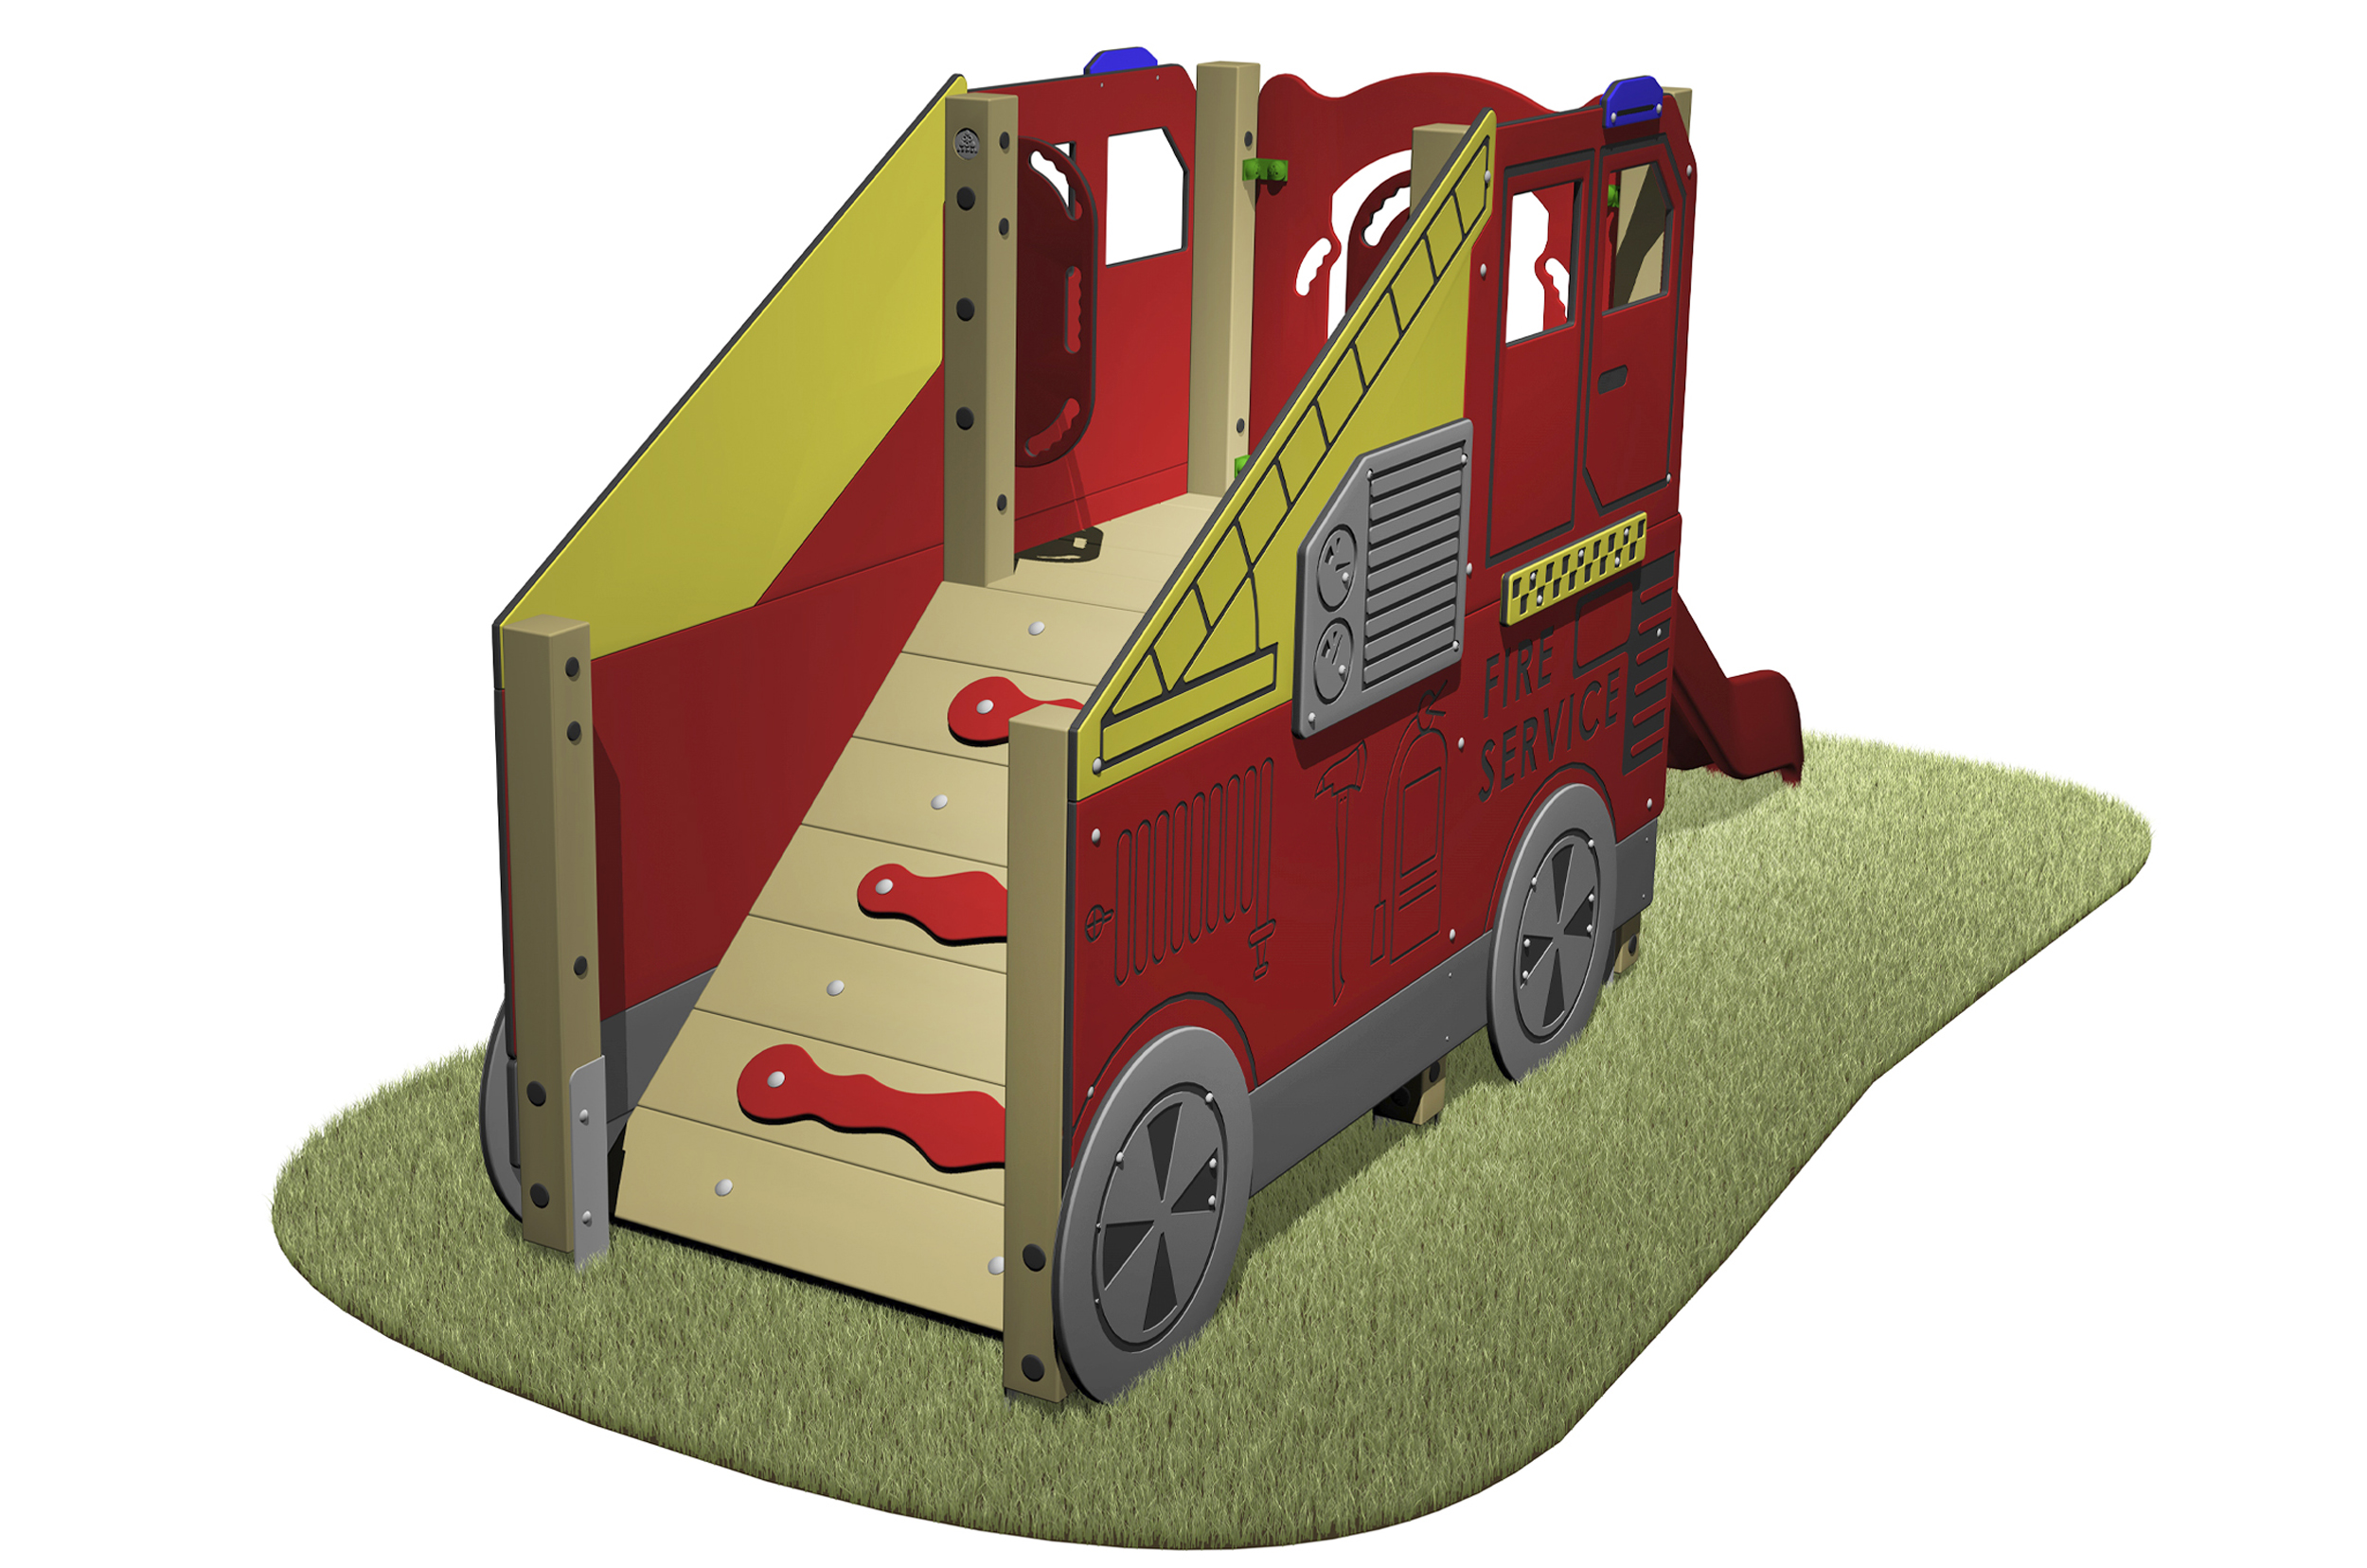 Fire Engine Slide with fire engine designed sides, access ramp and red slide